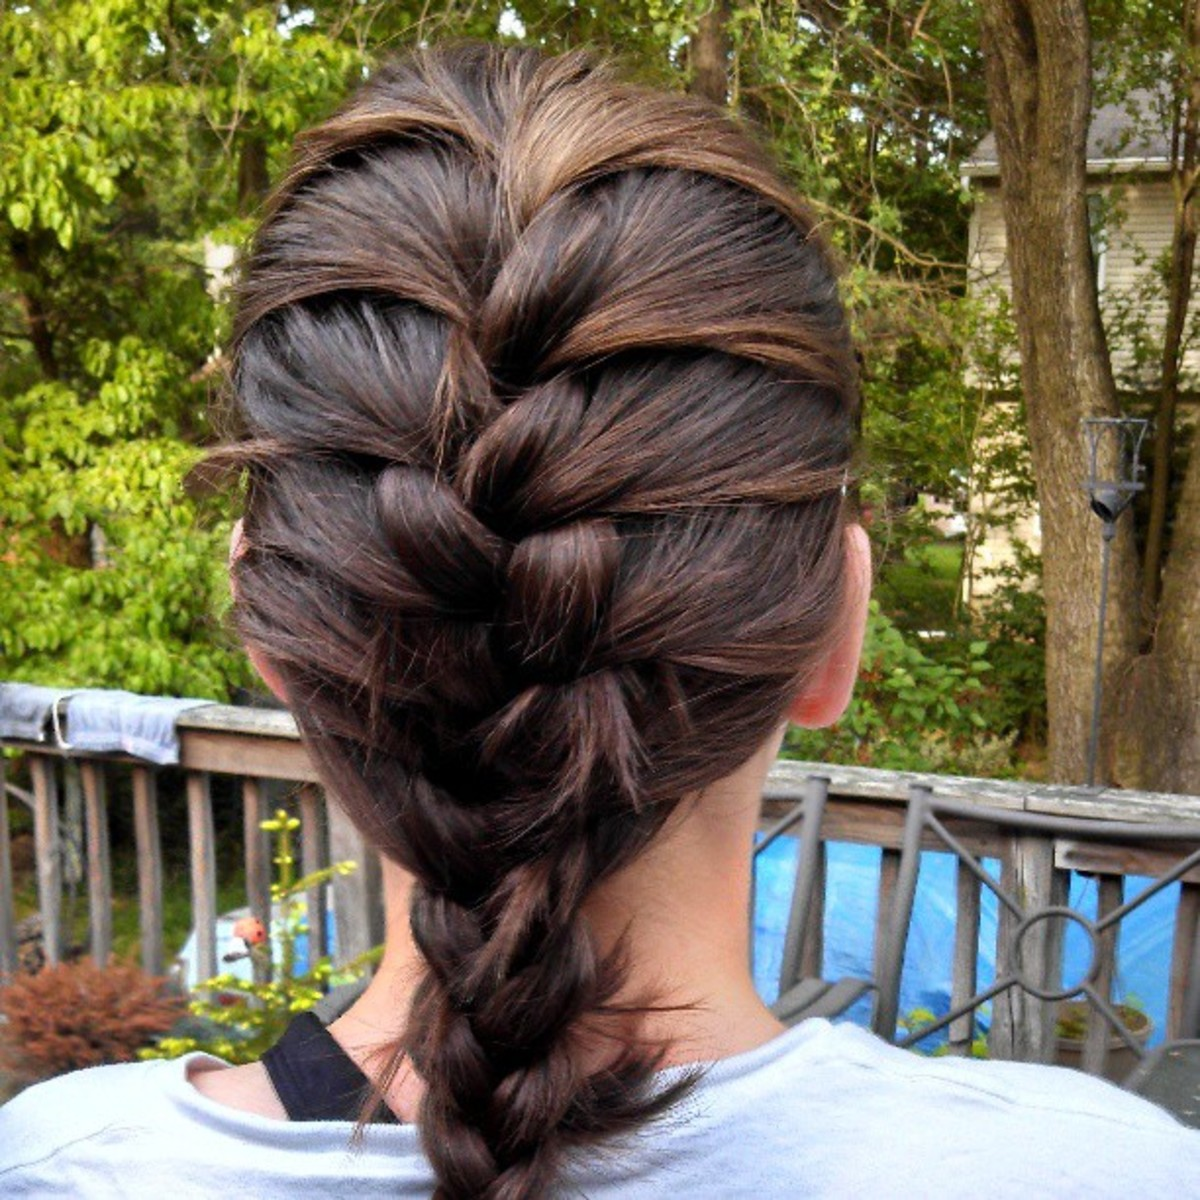 Put your slightly damp hair into one or more braids to get a wavy look when it dries.